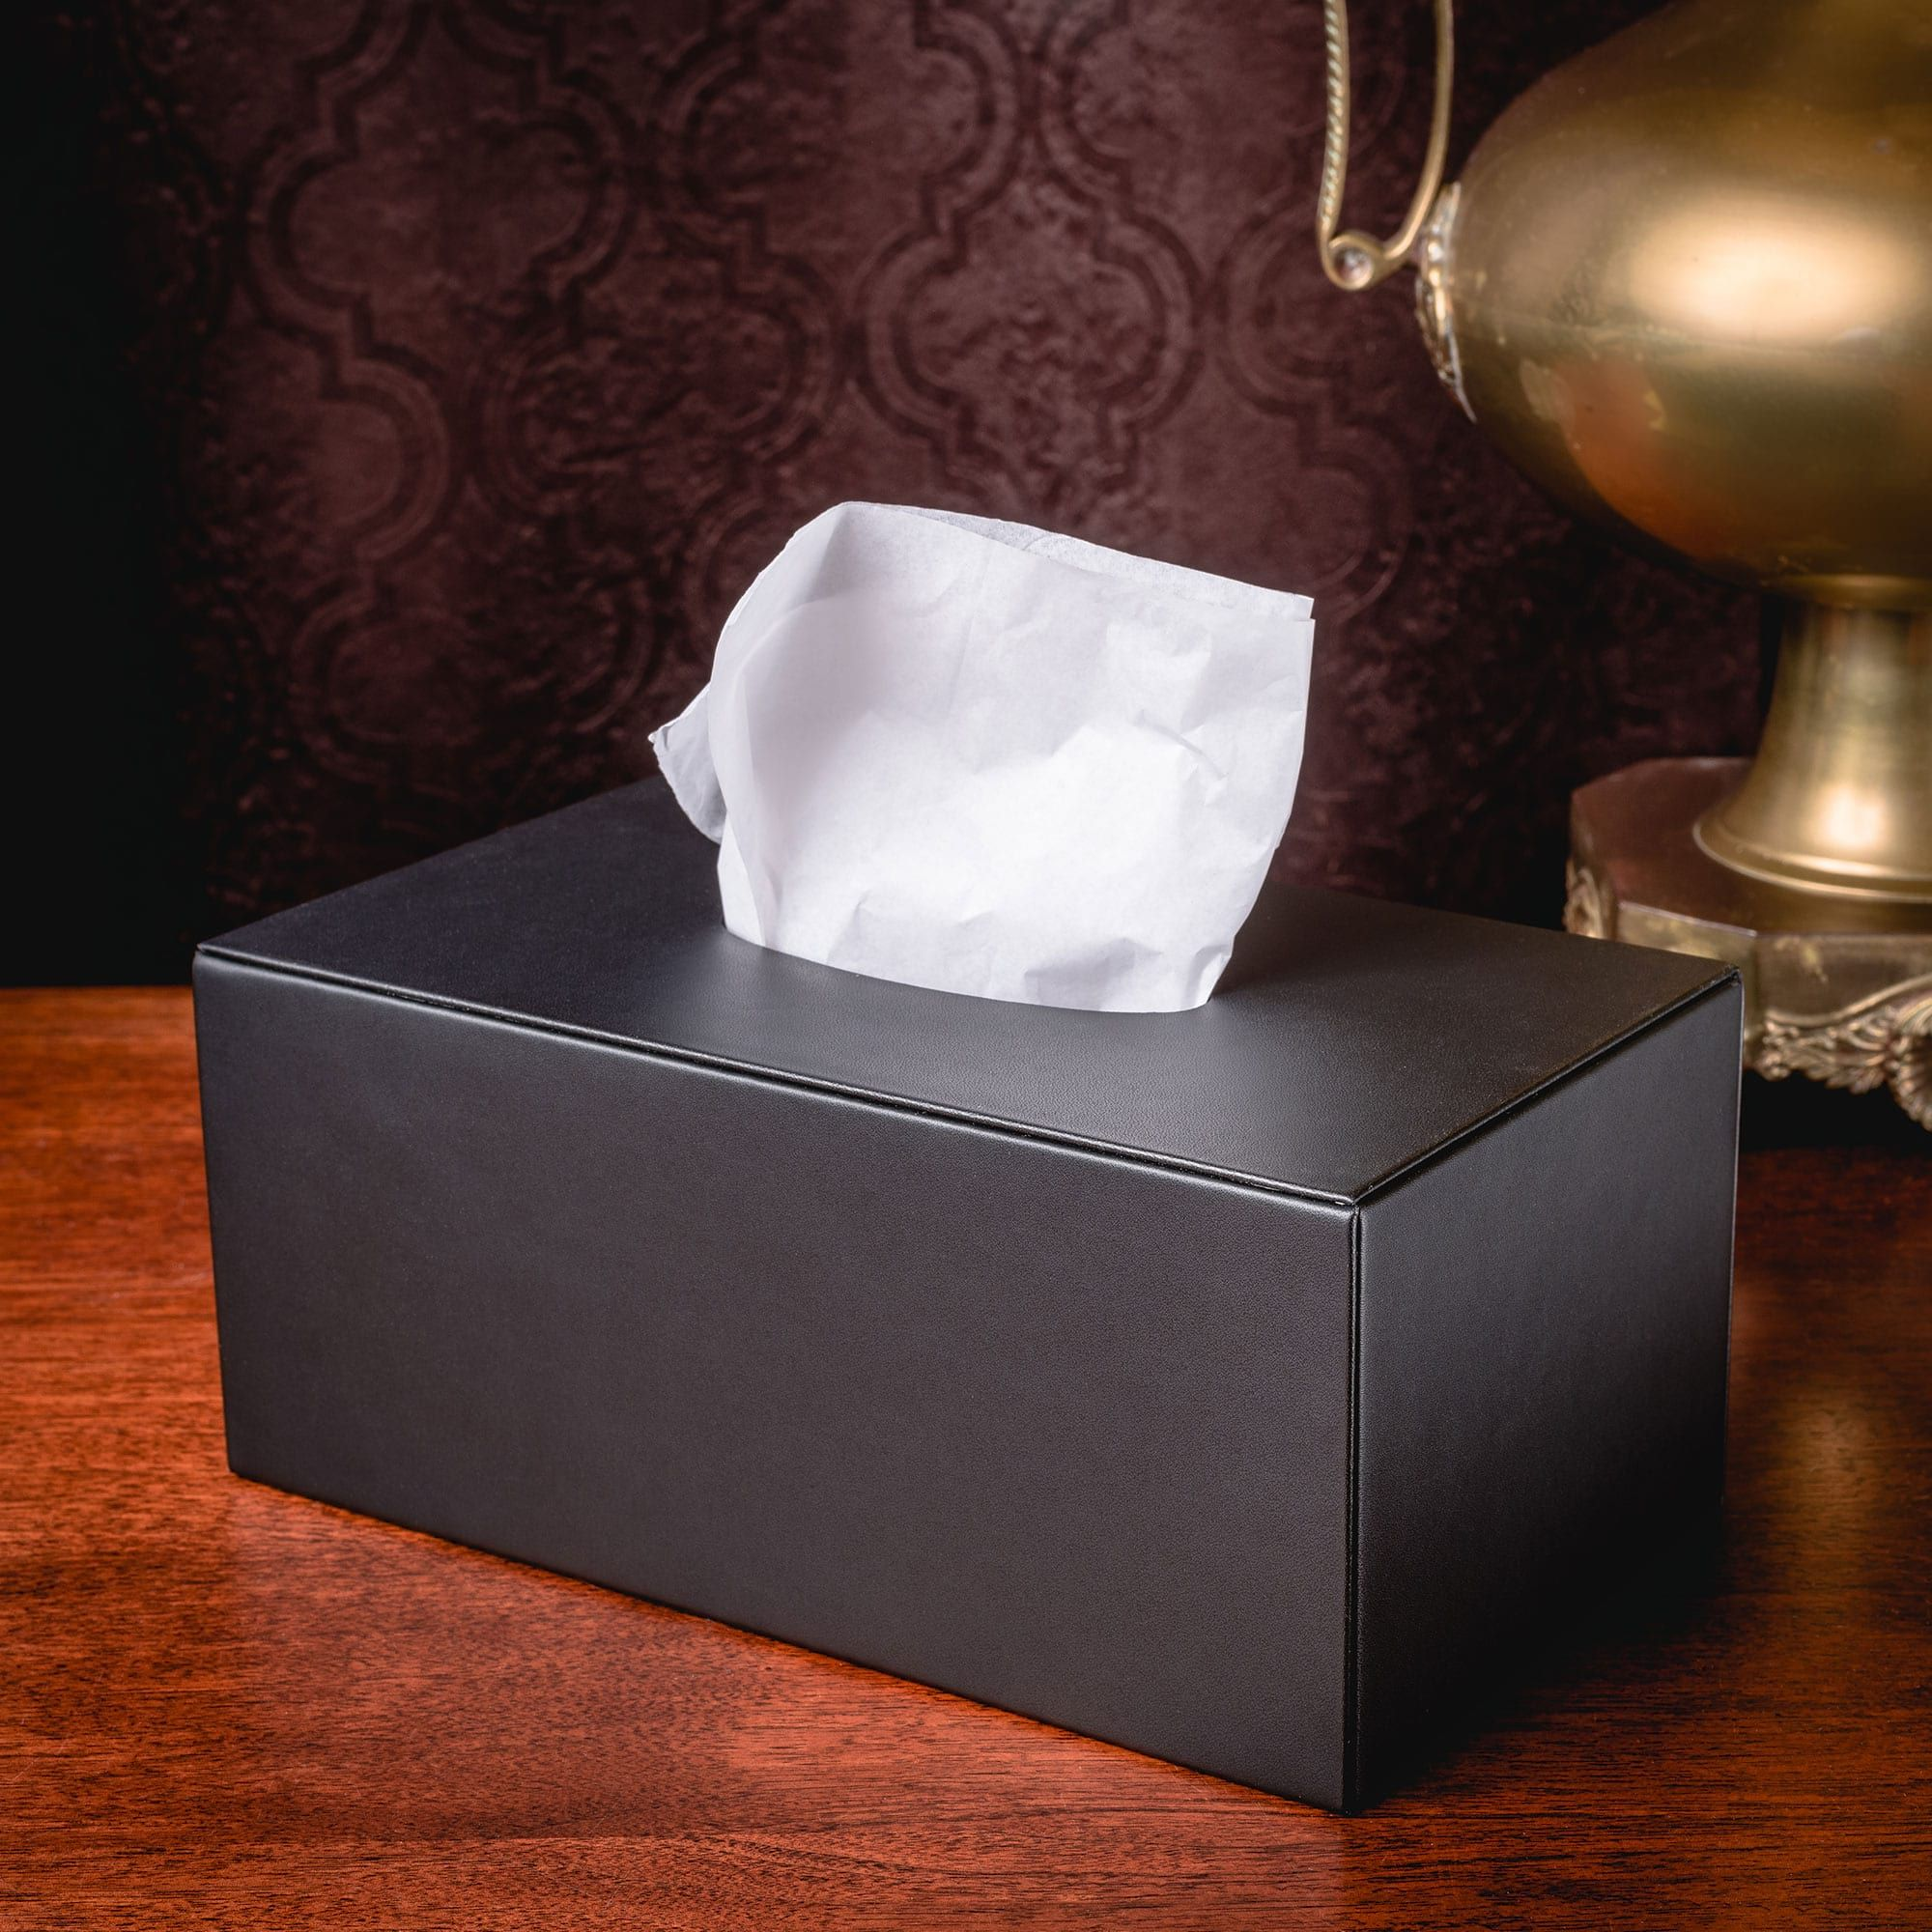 Black Leather Rectangular Tissue Box Cover In 2020 Tissue Box Covers Covered Boxes Tissue Boxes